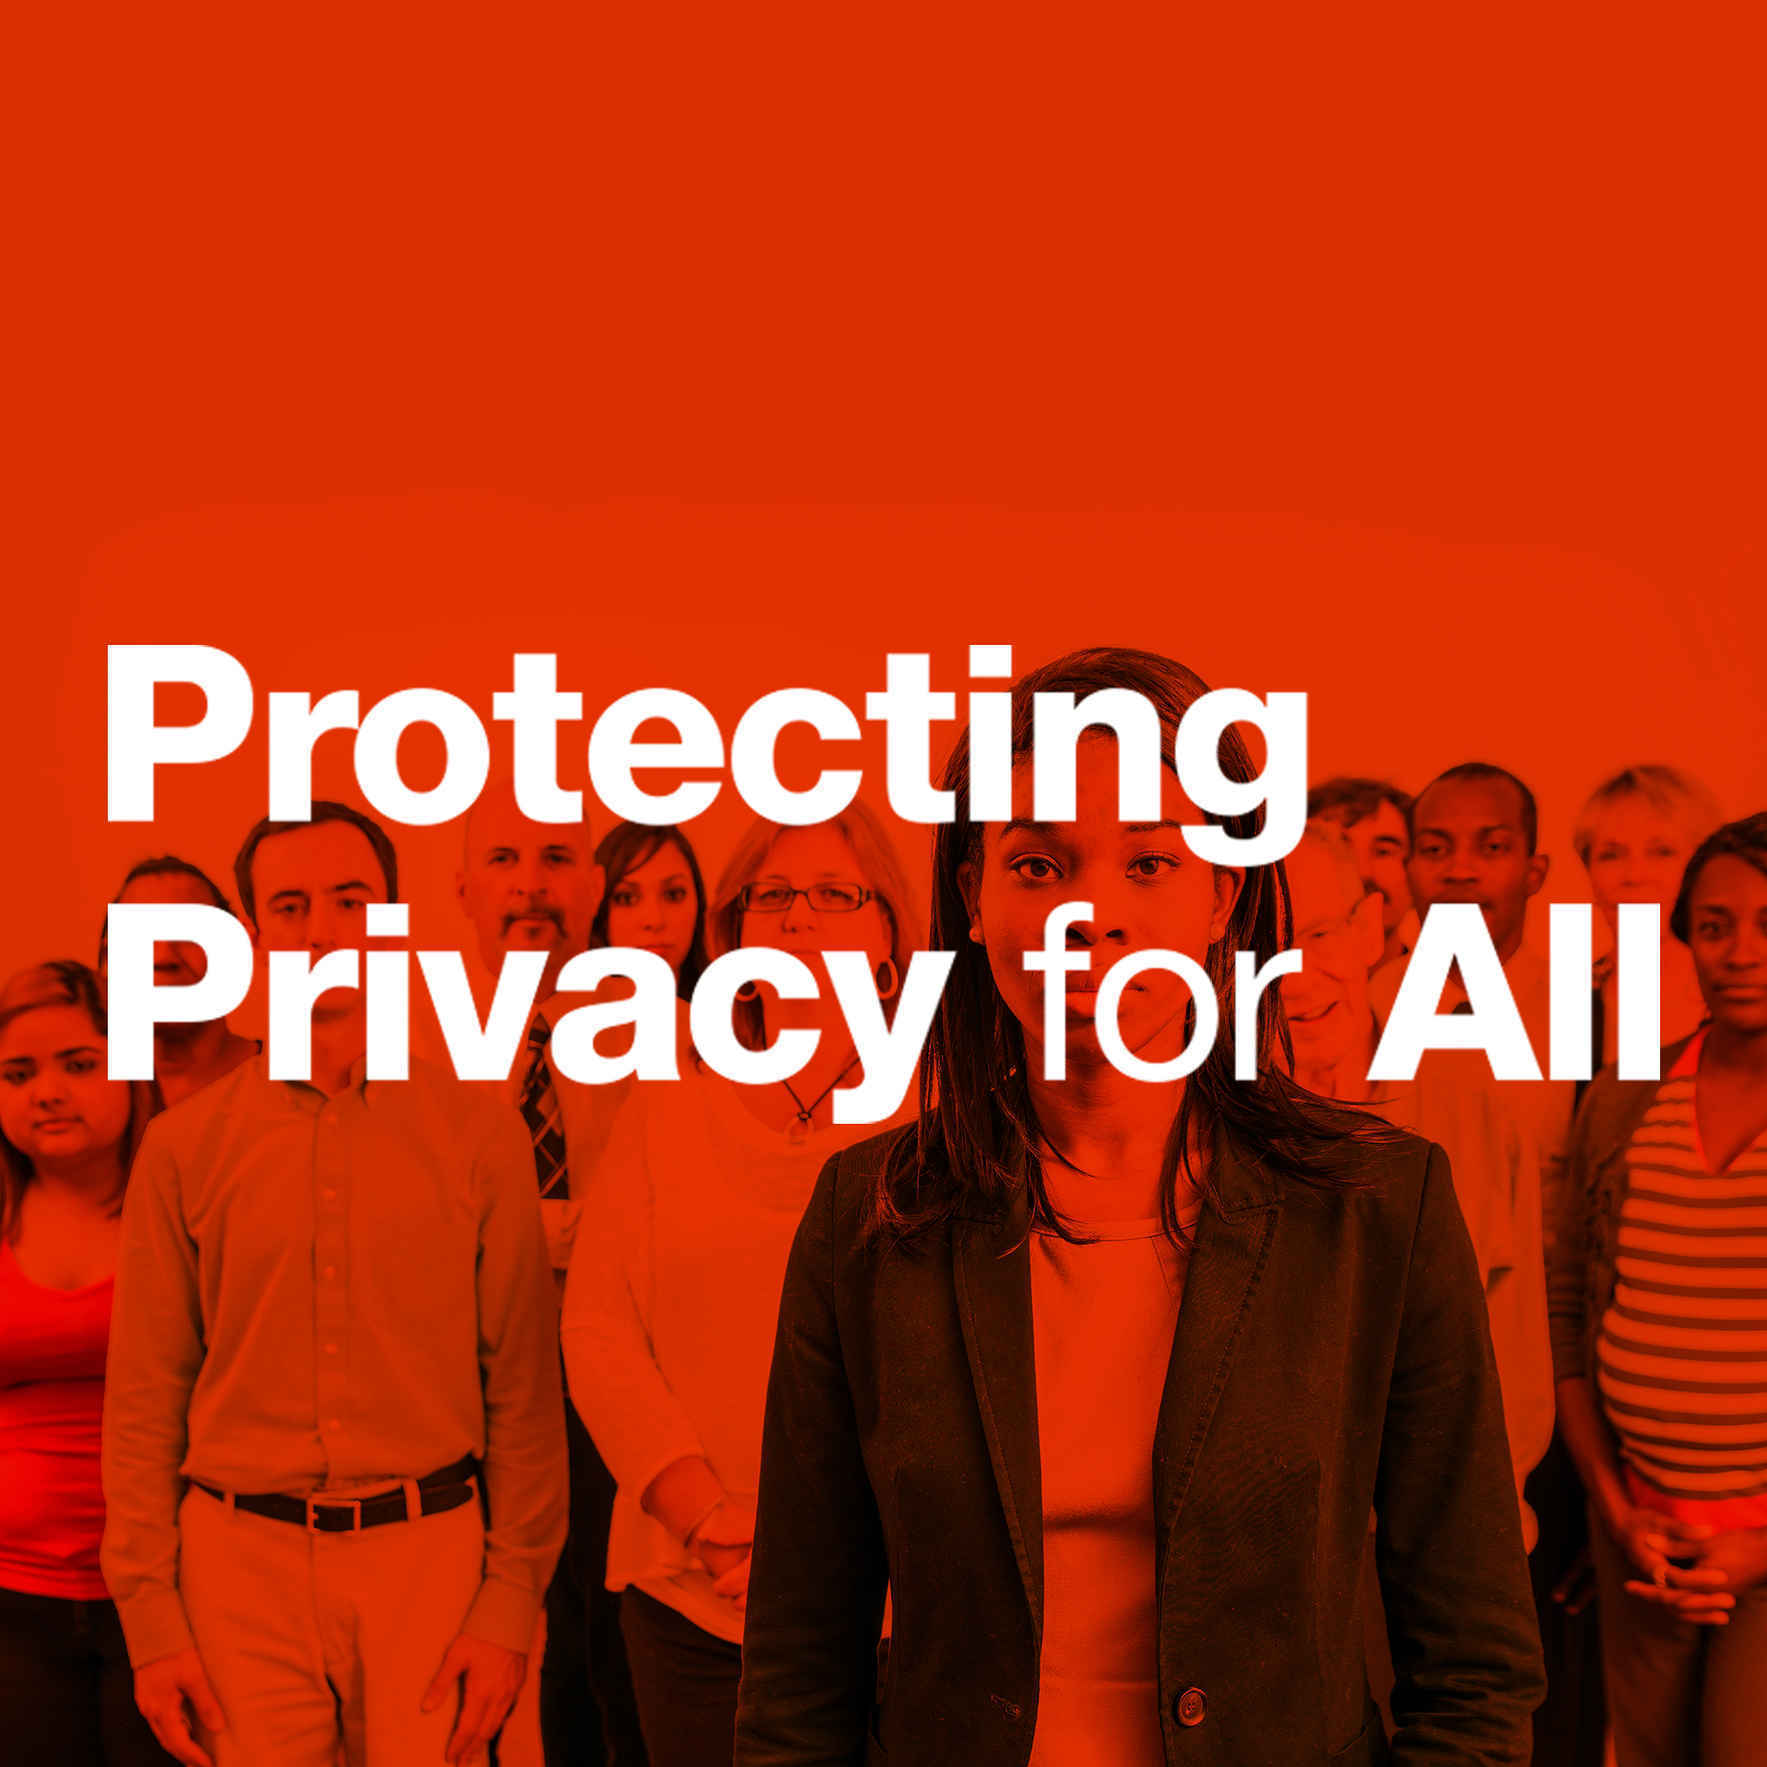 Help protect privacy for all!  image